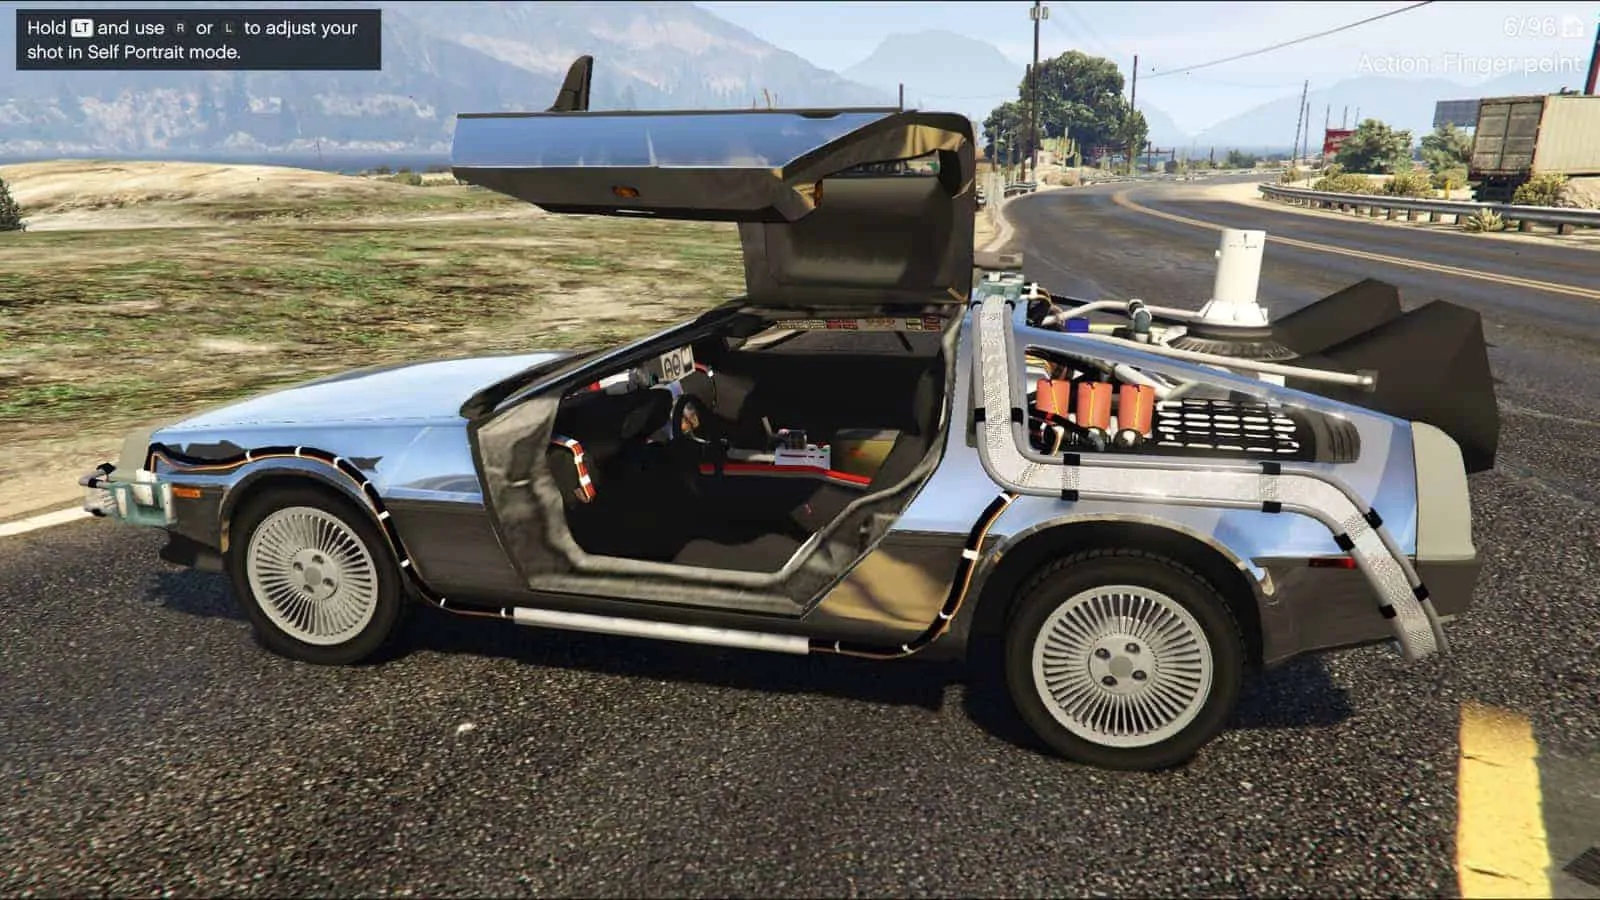 Mad Max Car For Sale >> GTA V Meets Back To The Future (Video) - GTA 5 Cheats